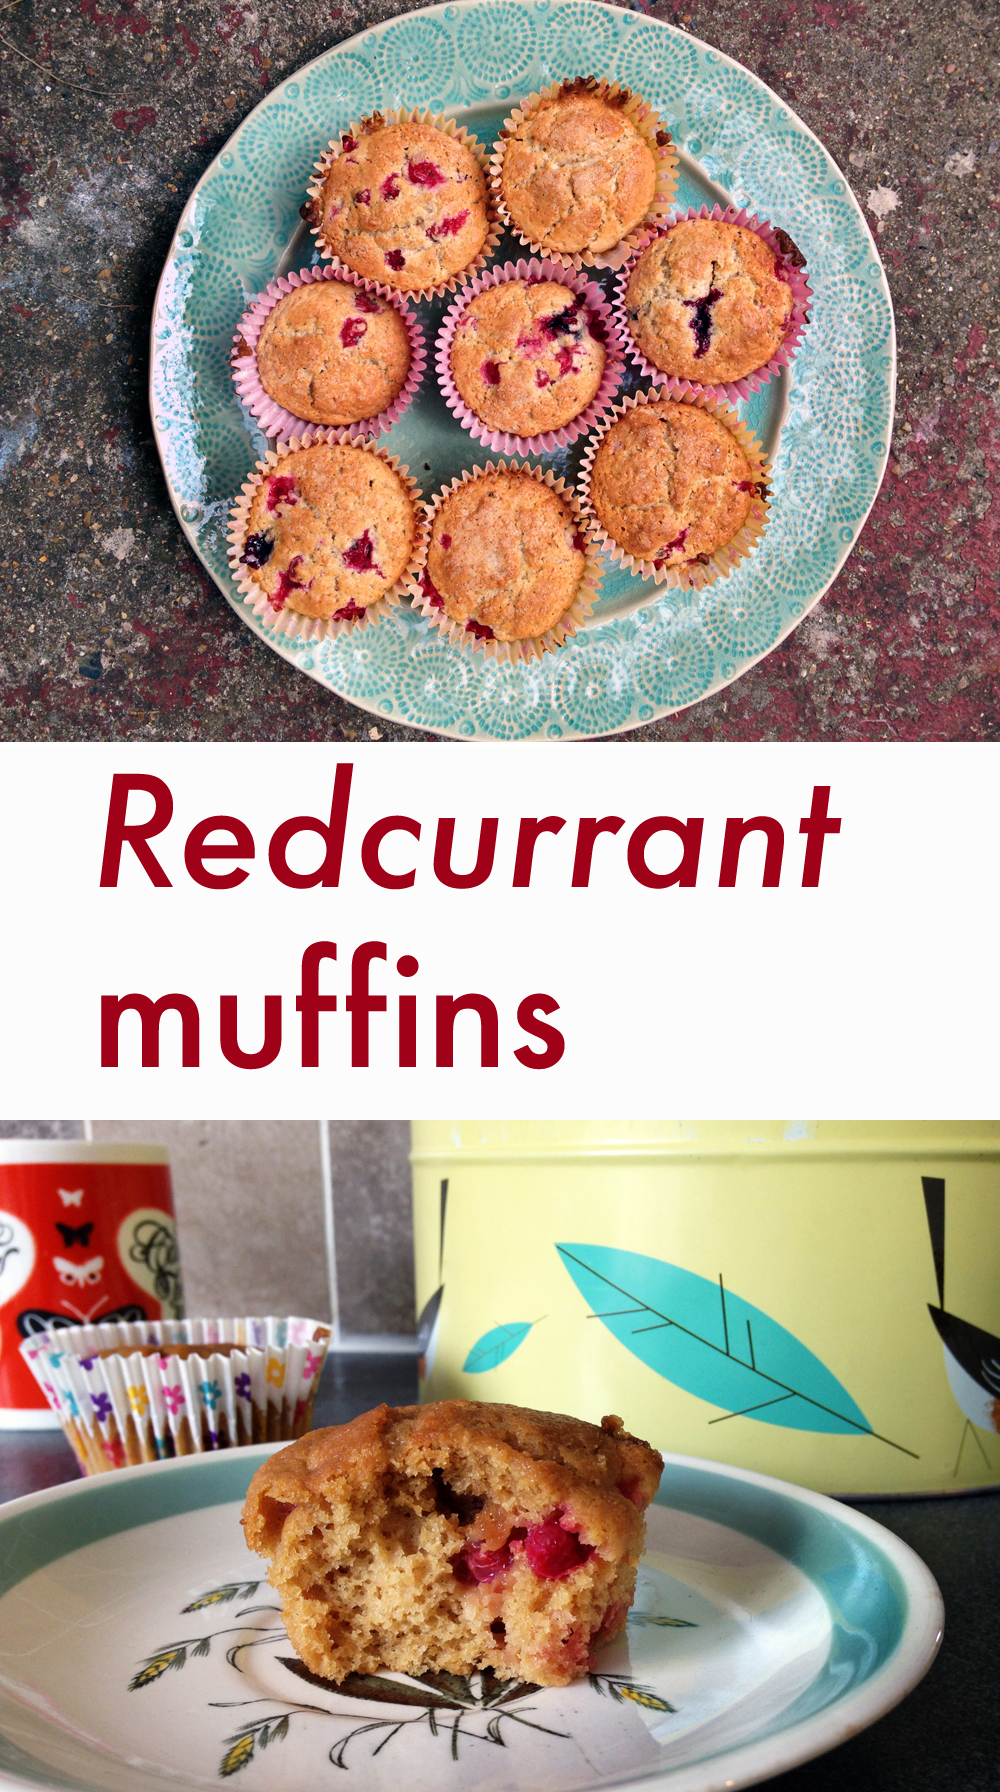 Redcurrant-muffins-recipe-sneaky-veg-baking-with-kids